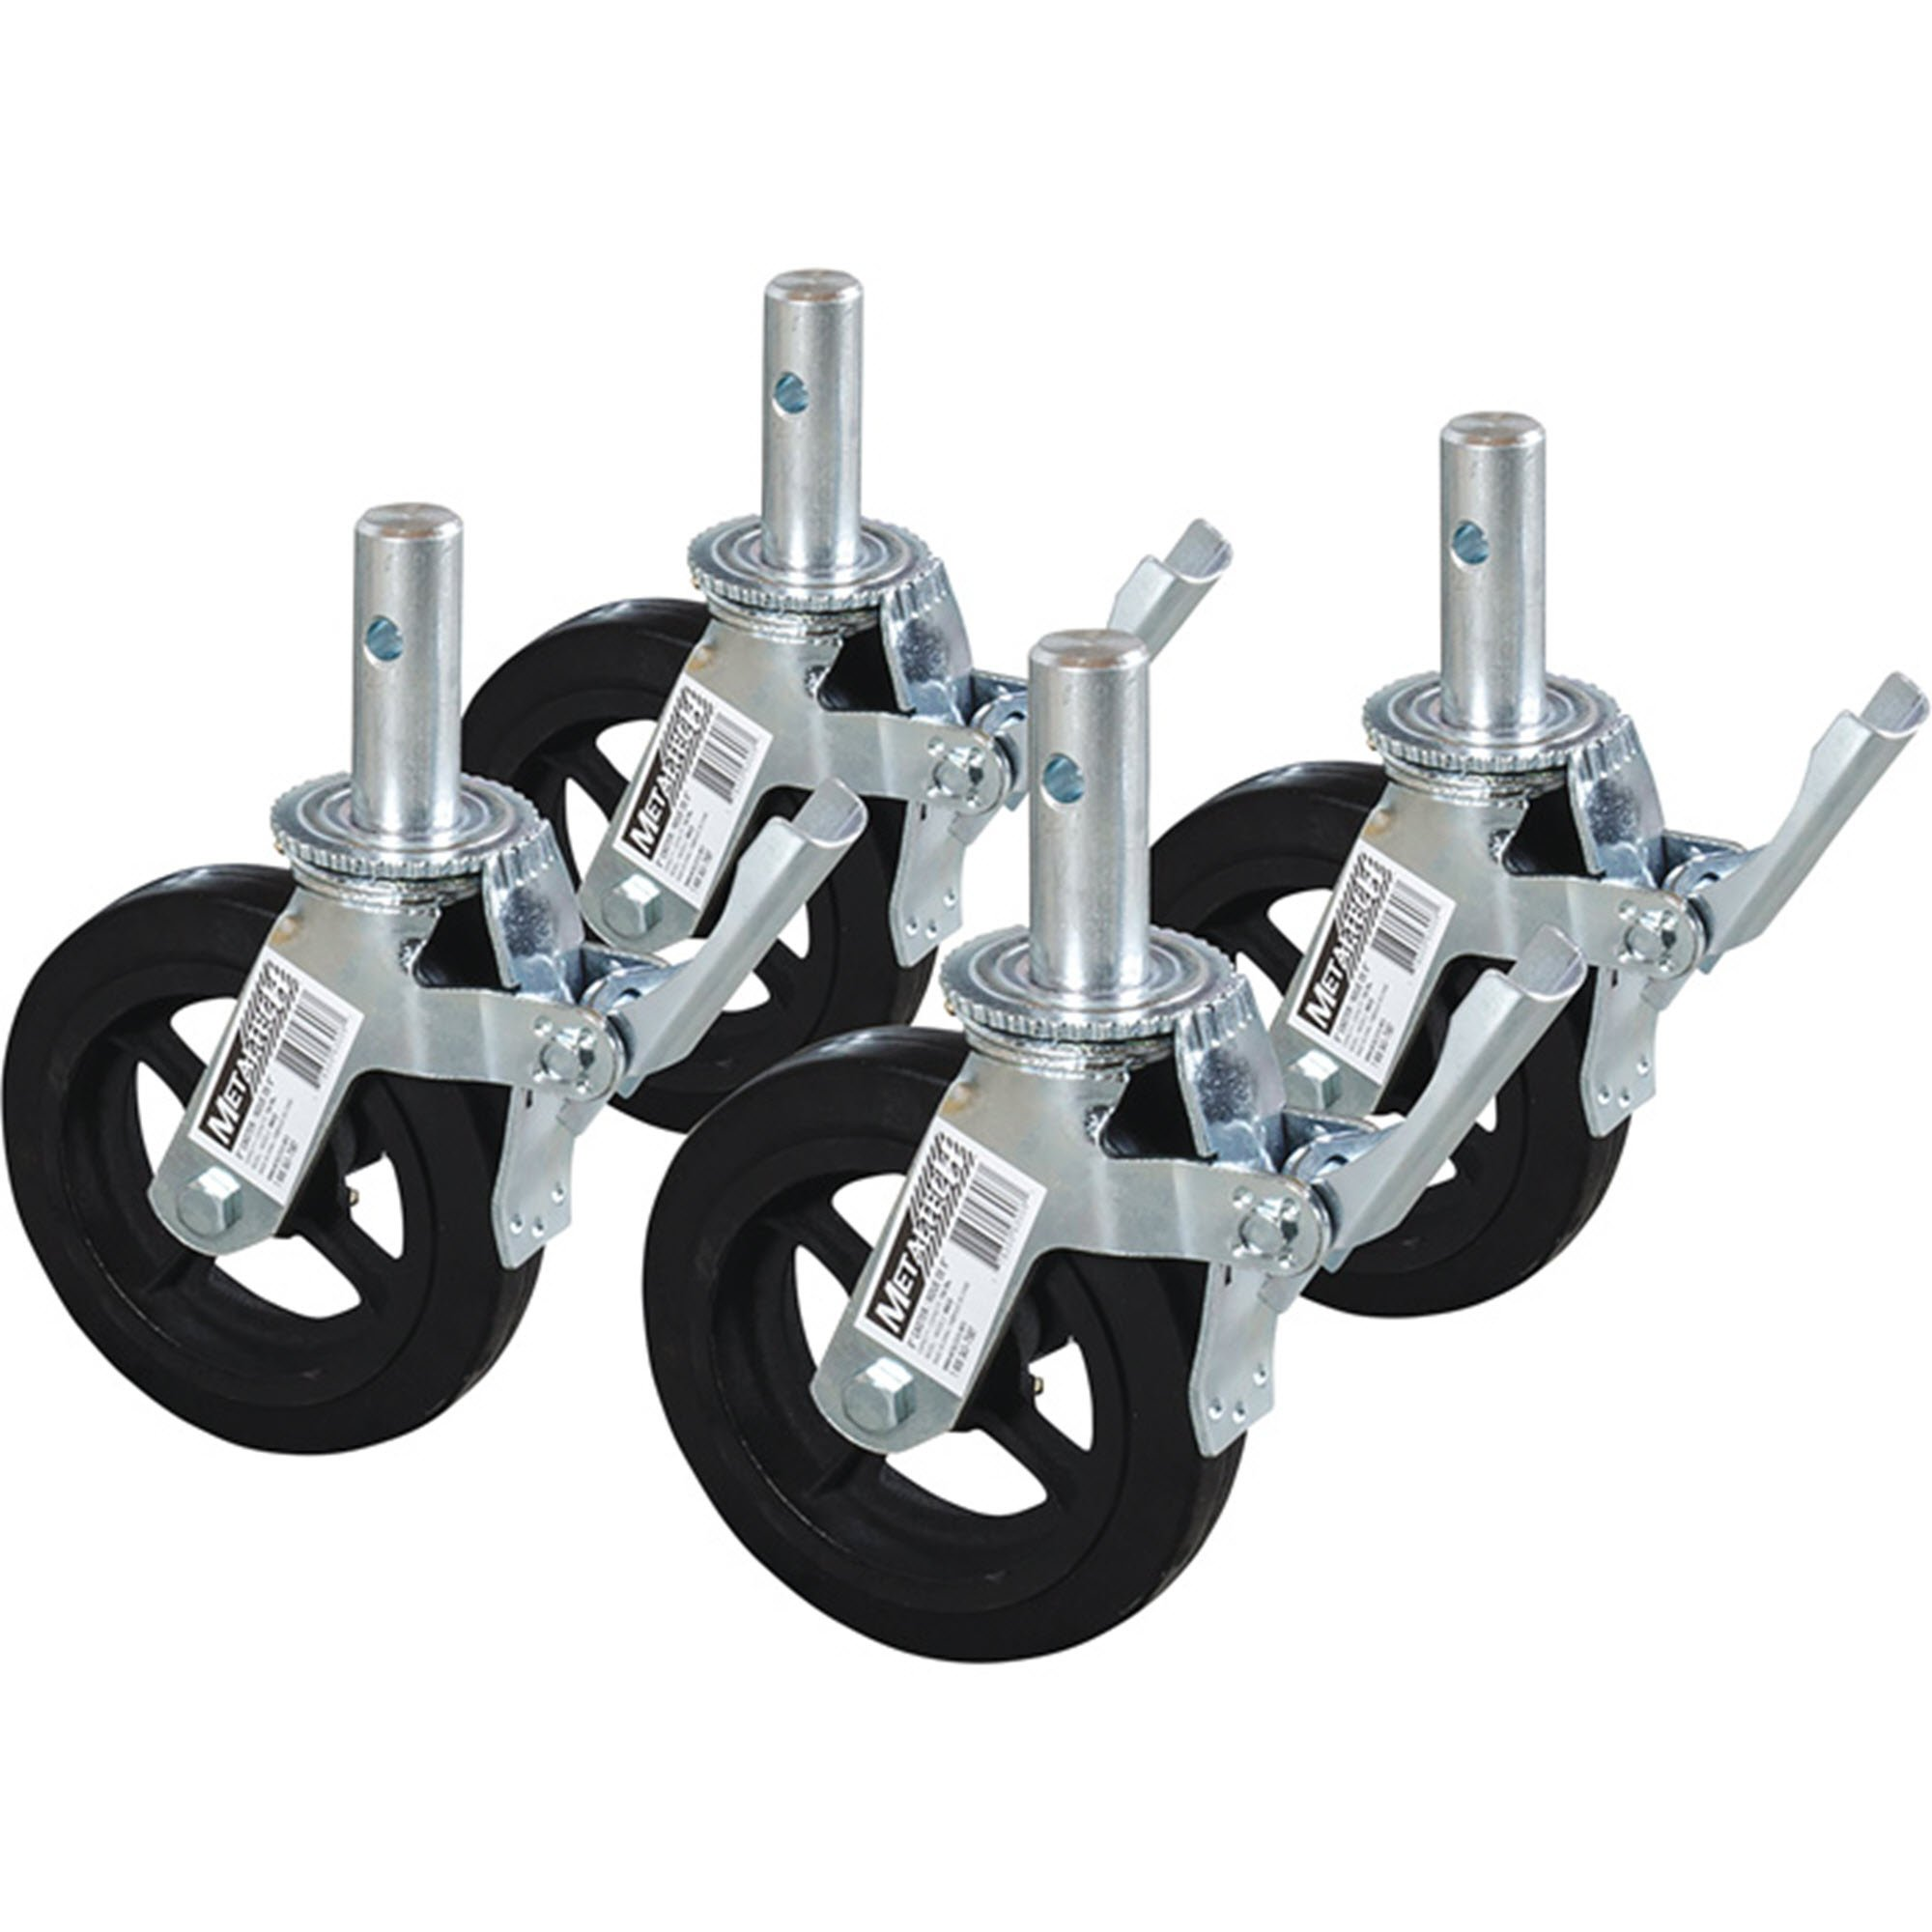 Metaltech Heavy-Duty 8in. Scaffold Caster with Foot Brake 4-Pk., Model# M-MBC8K4